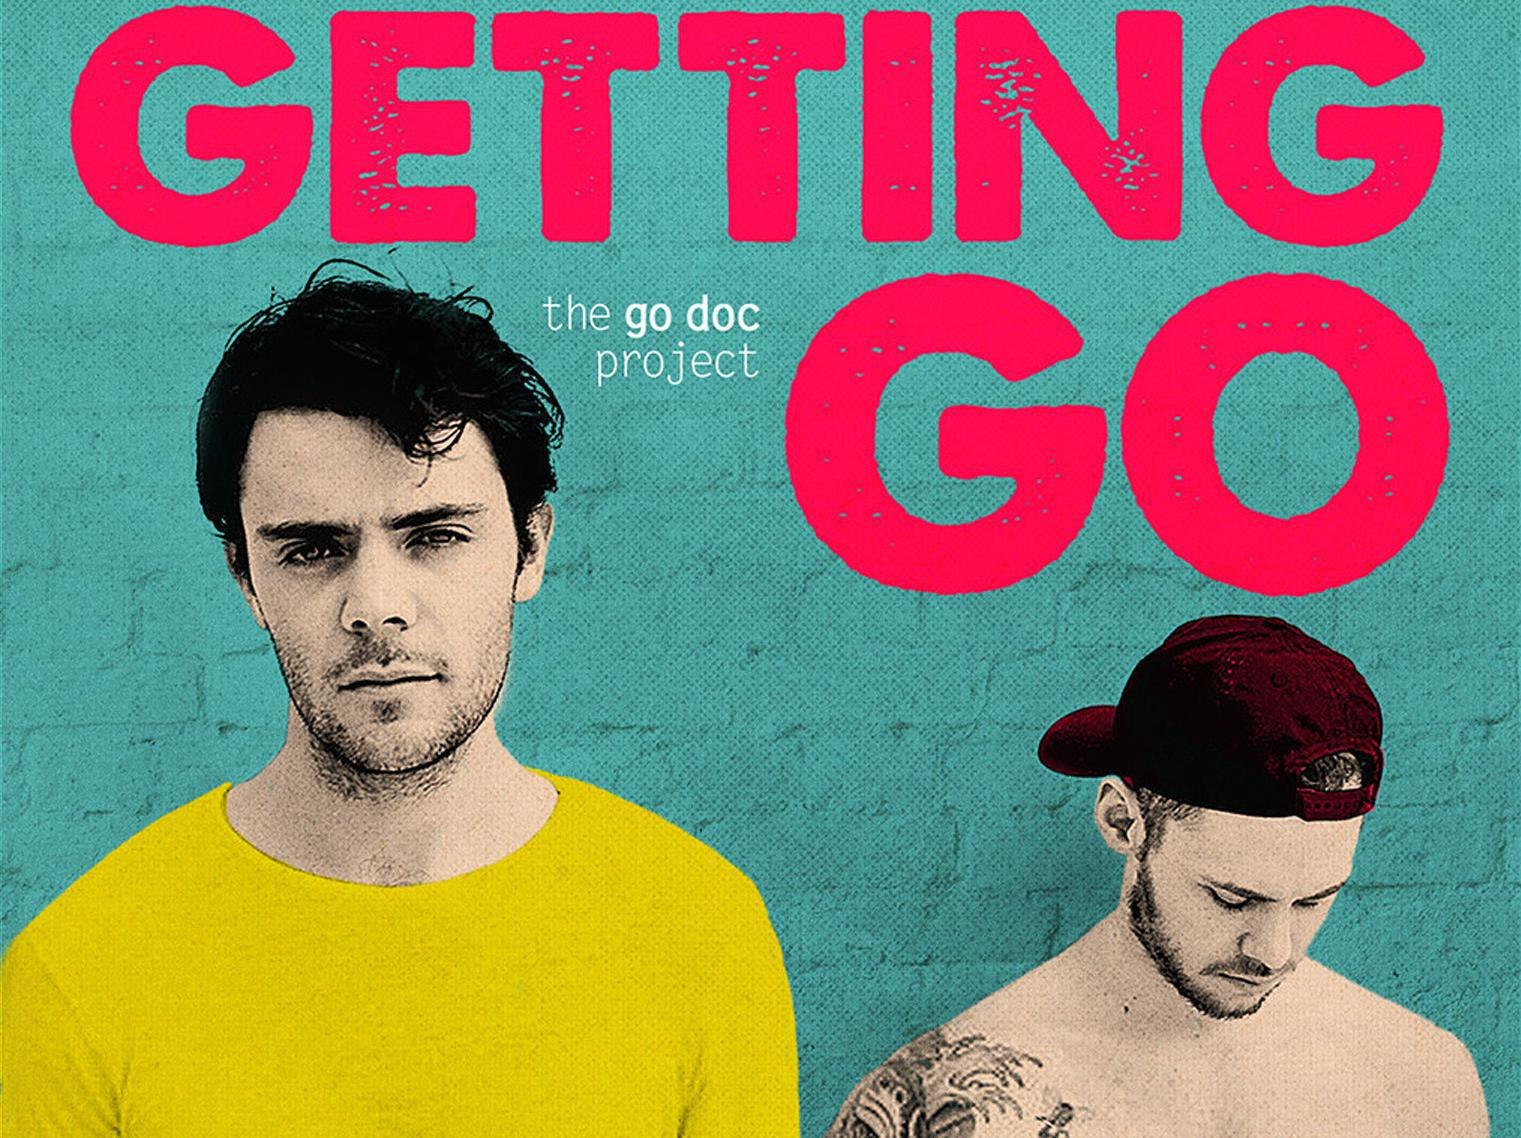 Getting Go, the Go Doc Project